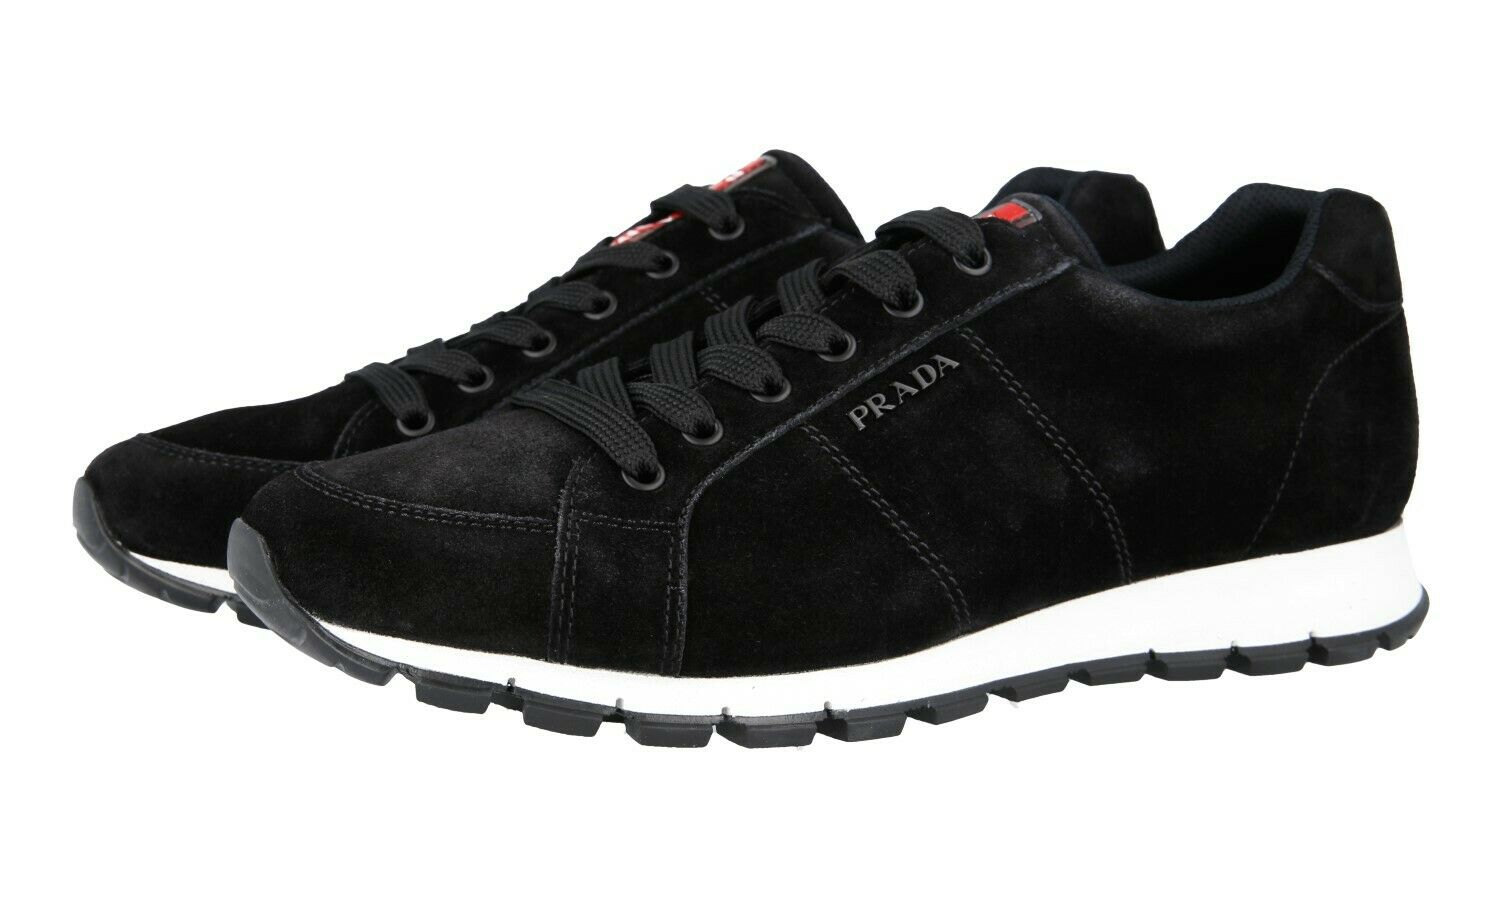 AUTH PRADA MATCHRACE TRAINERS SHOES 4E3233 BLACK SUEDE NEW 8 42 42,5